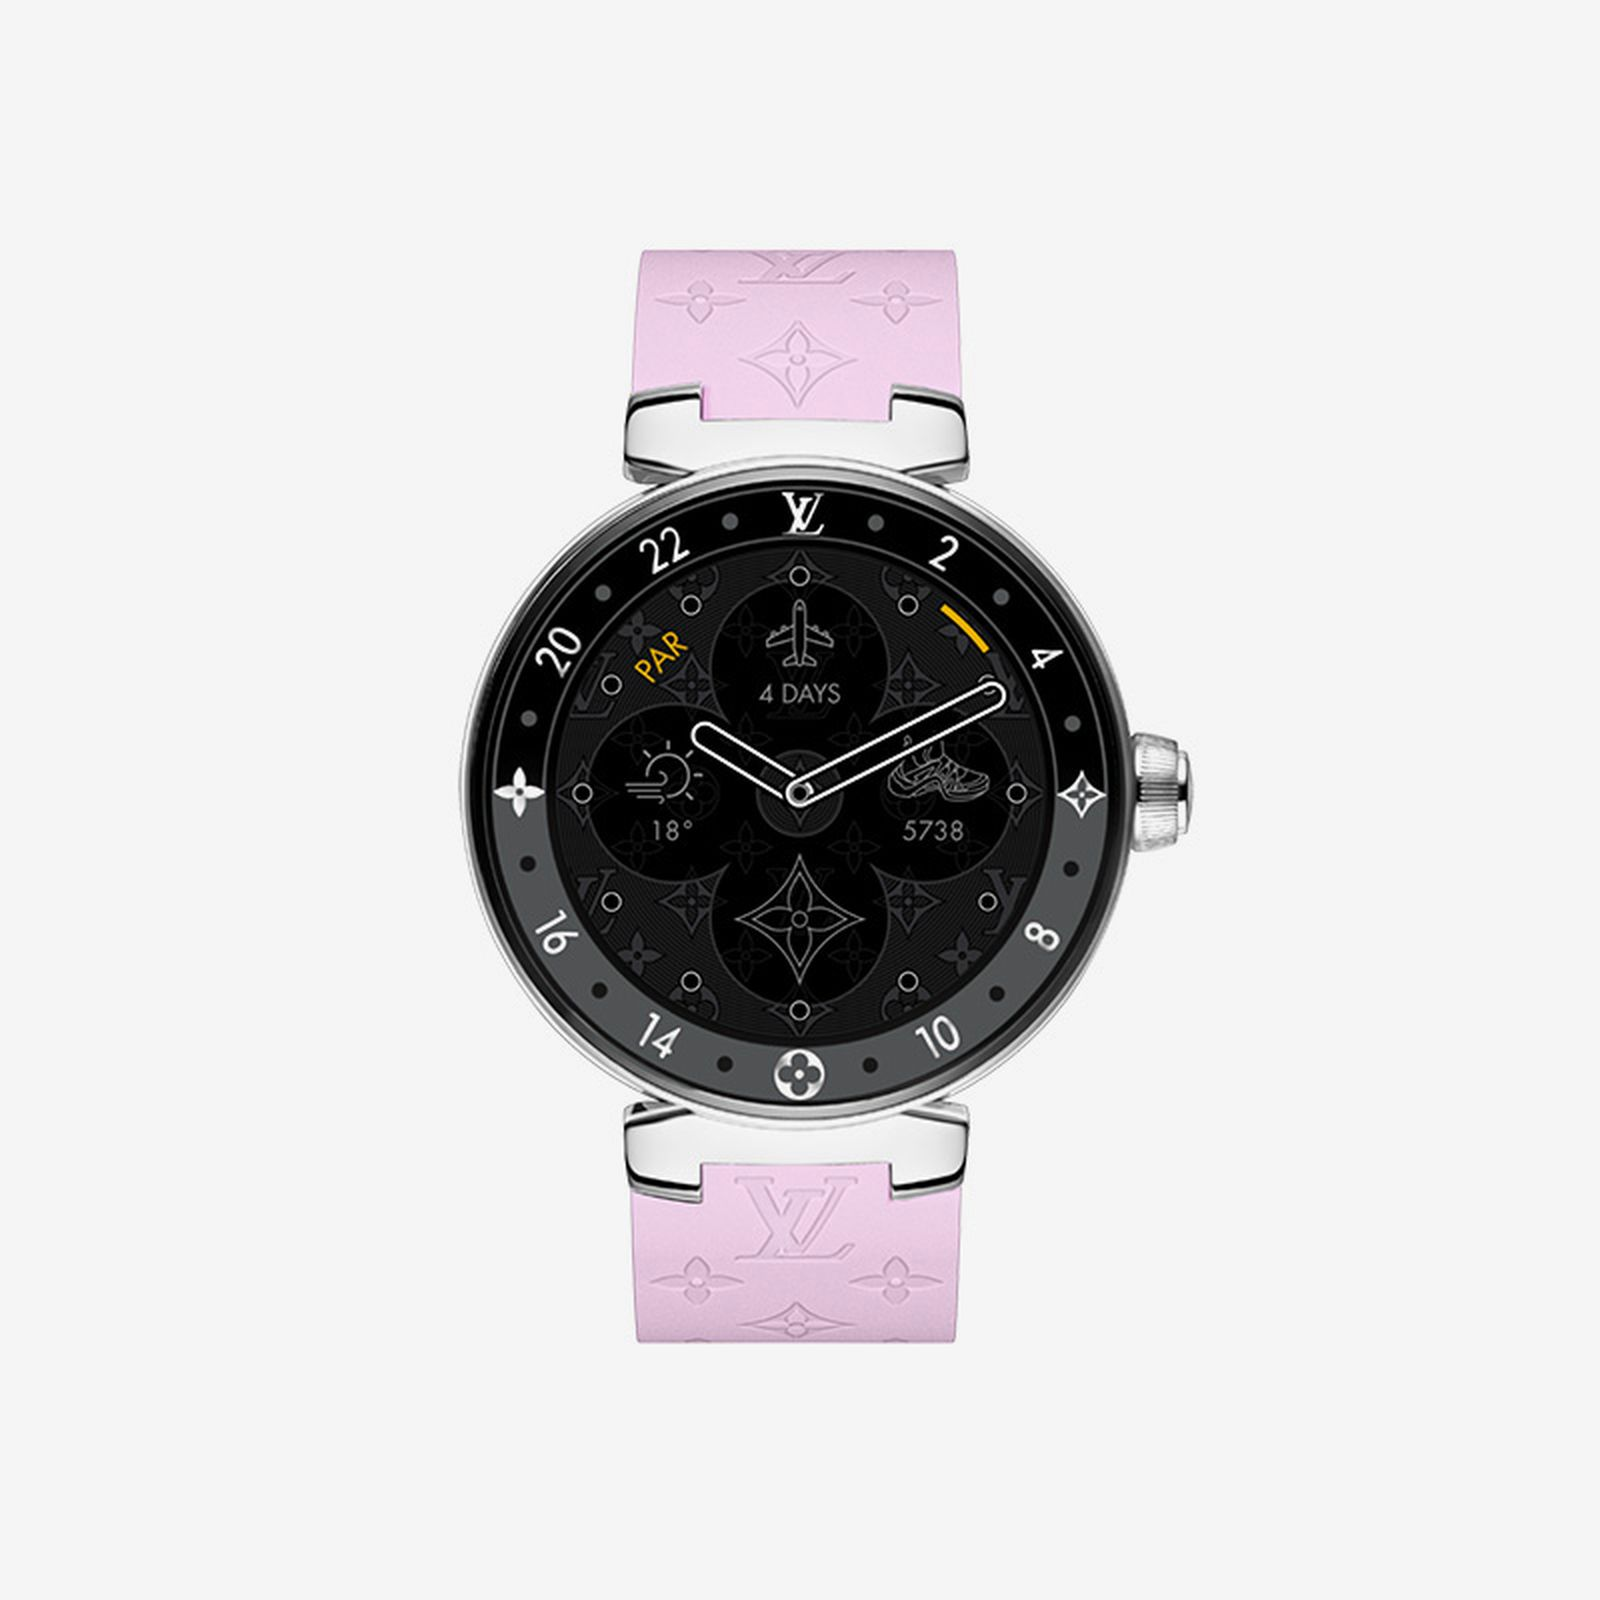 louis vuitton tambour horizon watch 2019